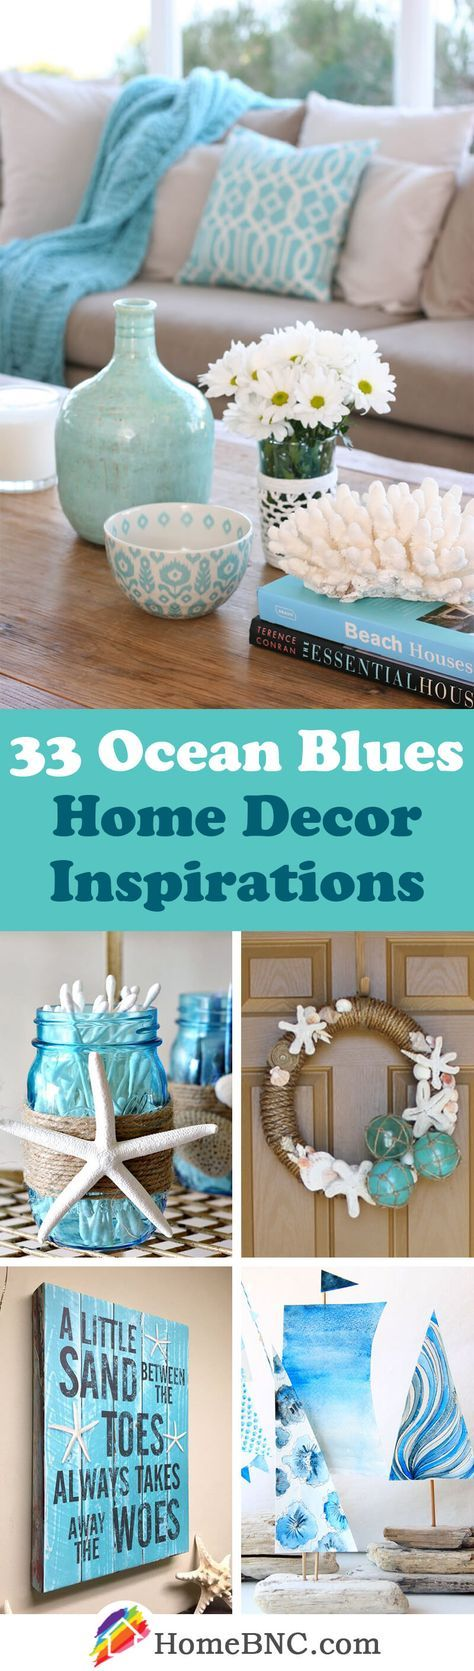 Color Me Inspired: Ocean Blues Home Decor Inspiration | Living Spaces, Ocean  And Weather